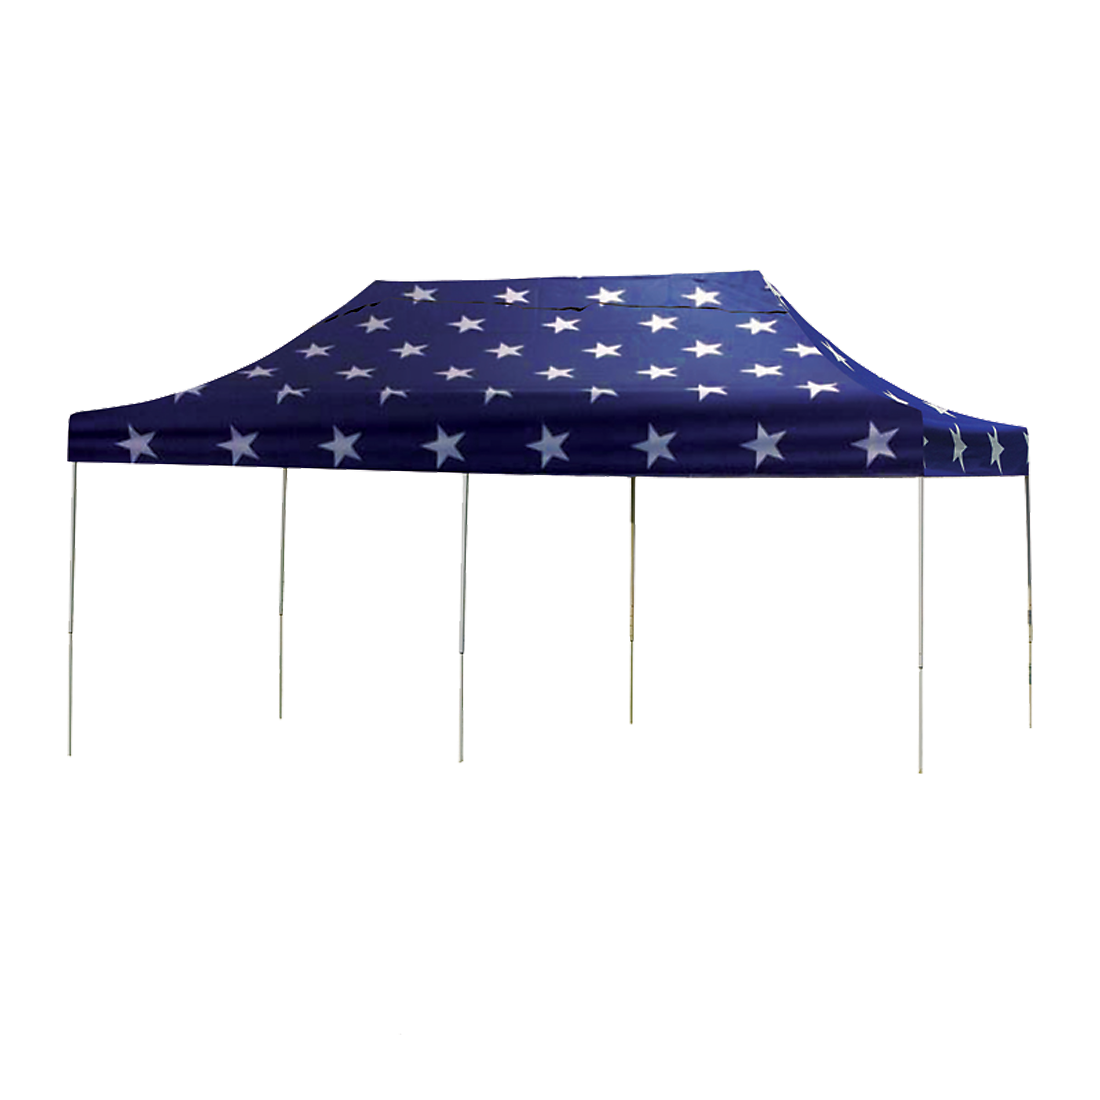 Pop-Up Canopy HD - Straight Leg 10 x 20 ft. Super Star